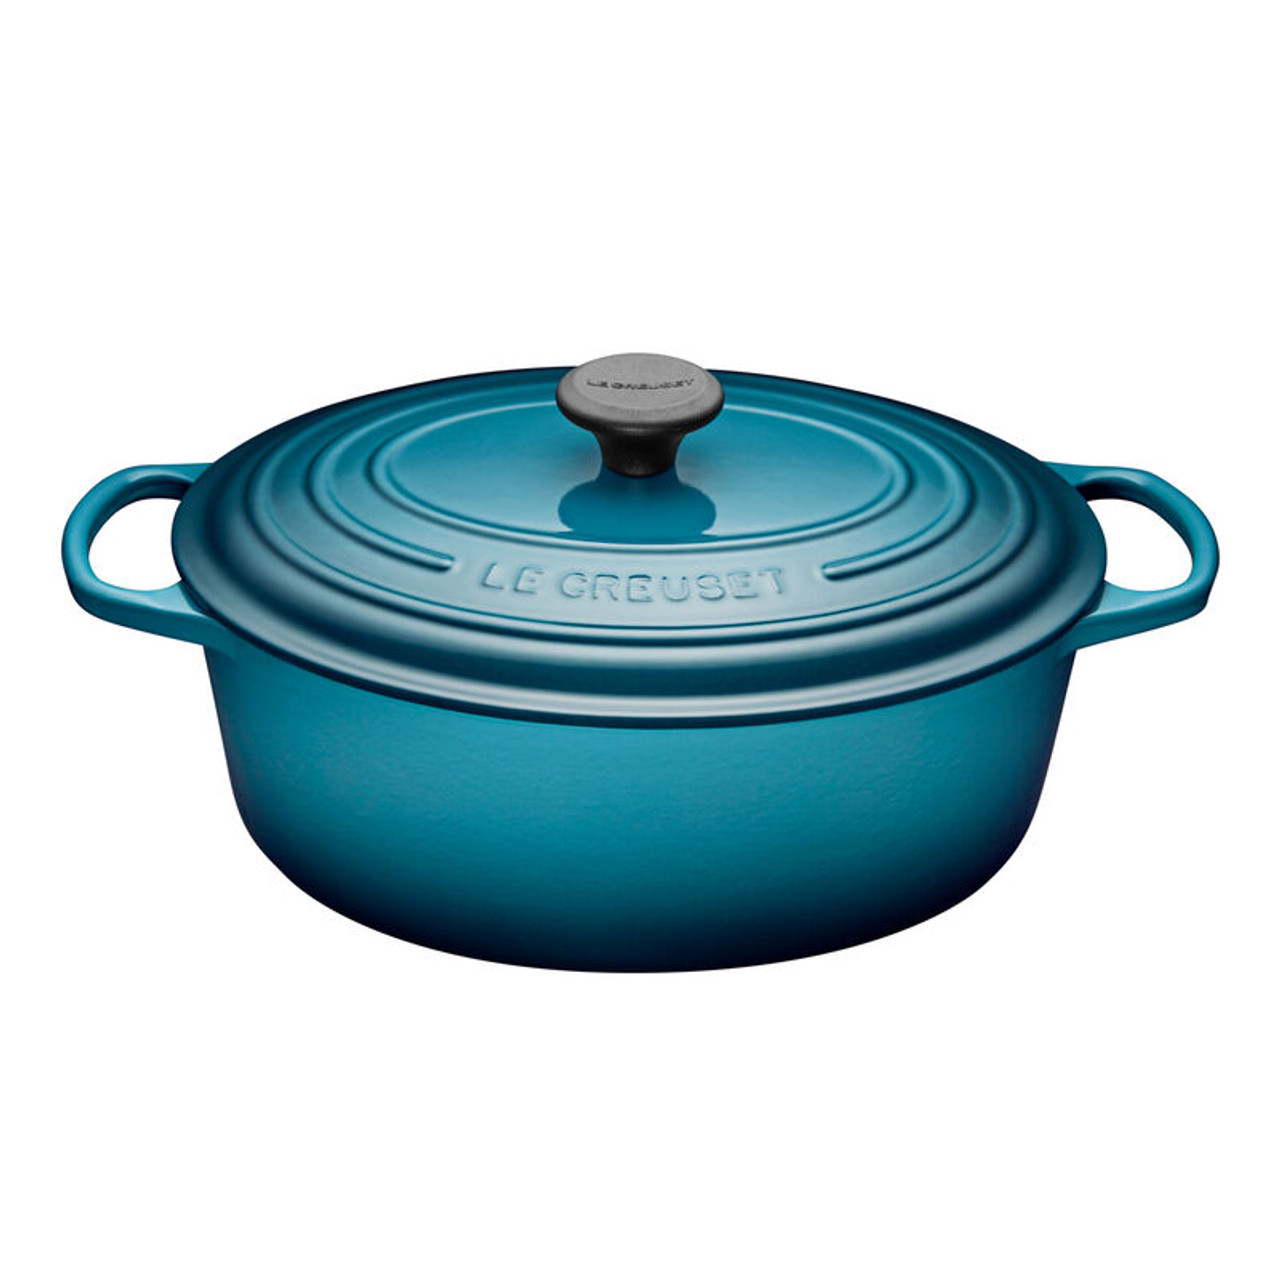 LE CREUSET OVAL FRENCH OVEN 6.3L